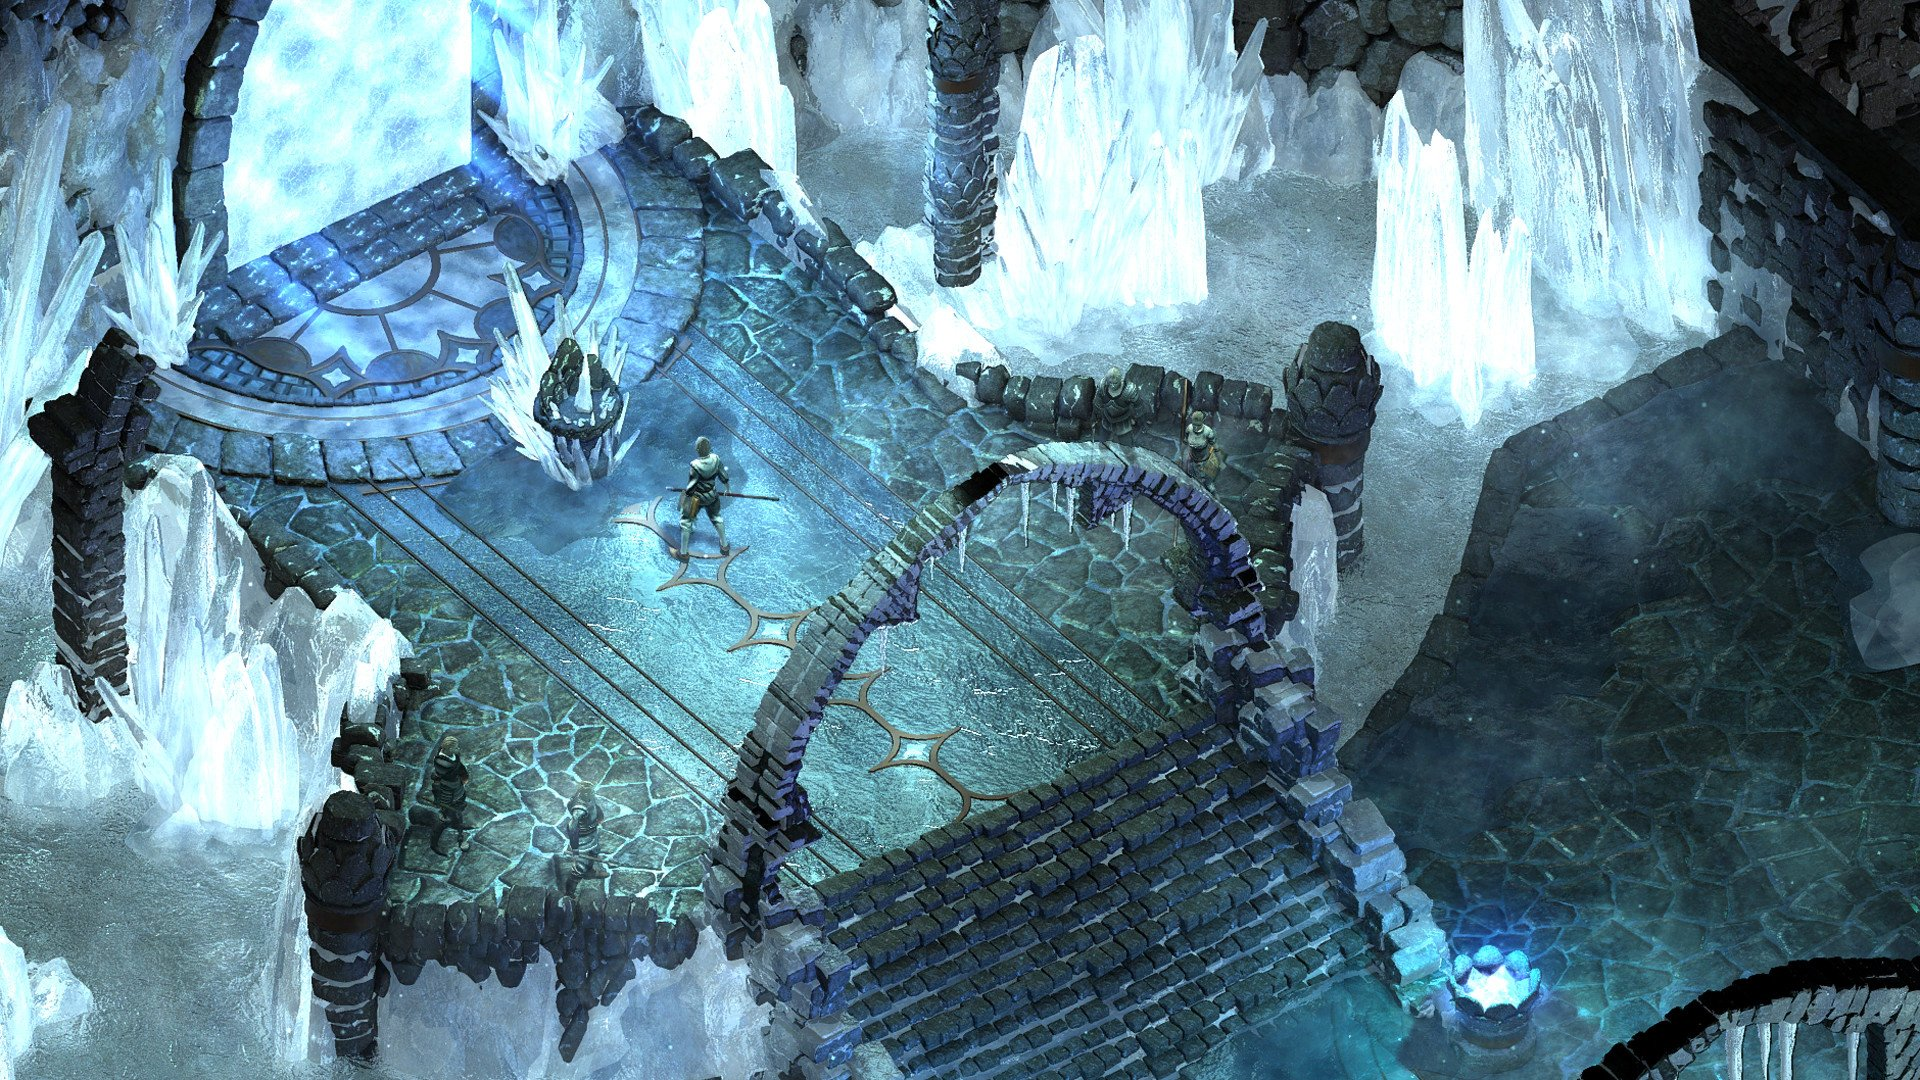 Pillars Of Eternity Wallpaper: PILLARS-OF-ETERNITY Fantasy Rpg Strategy Adventure Pillars